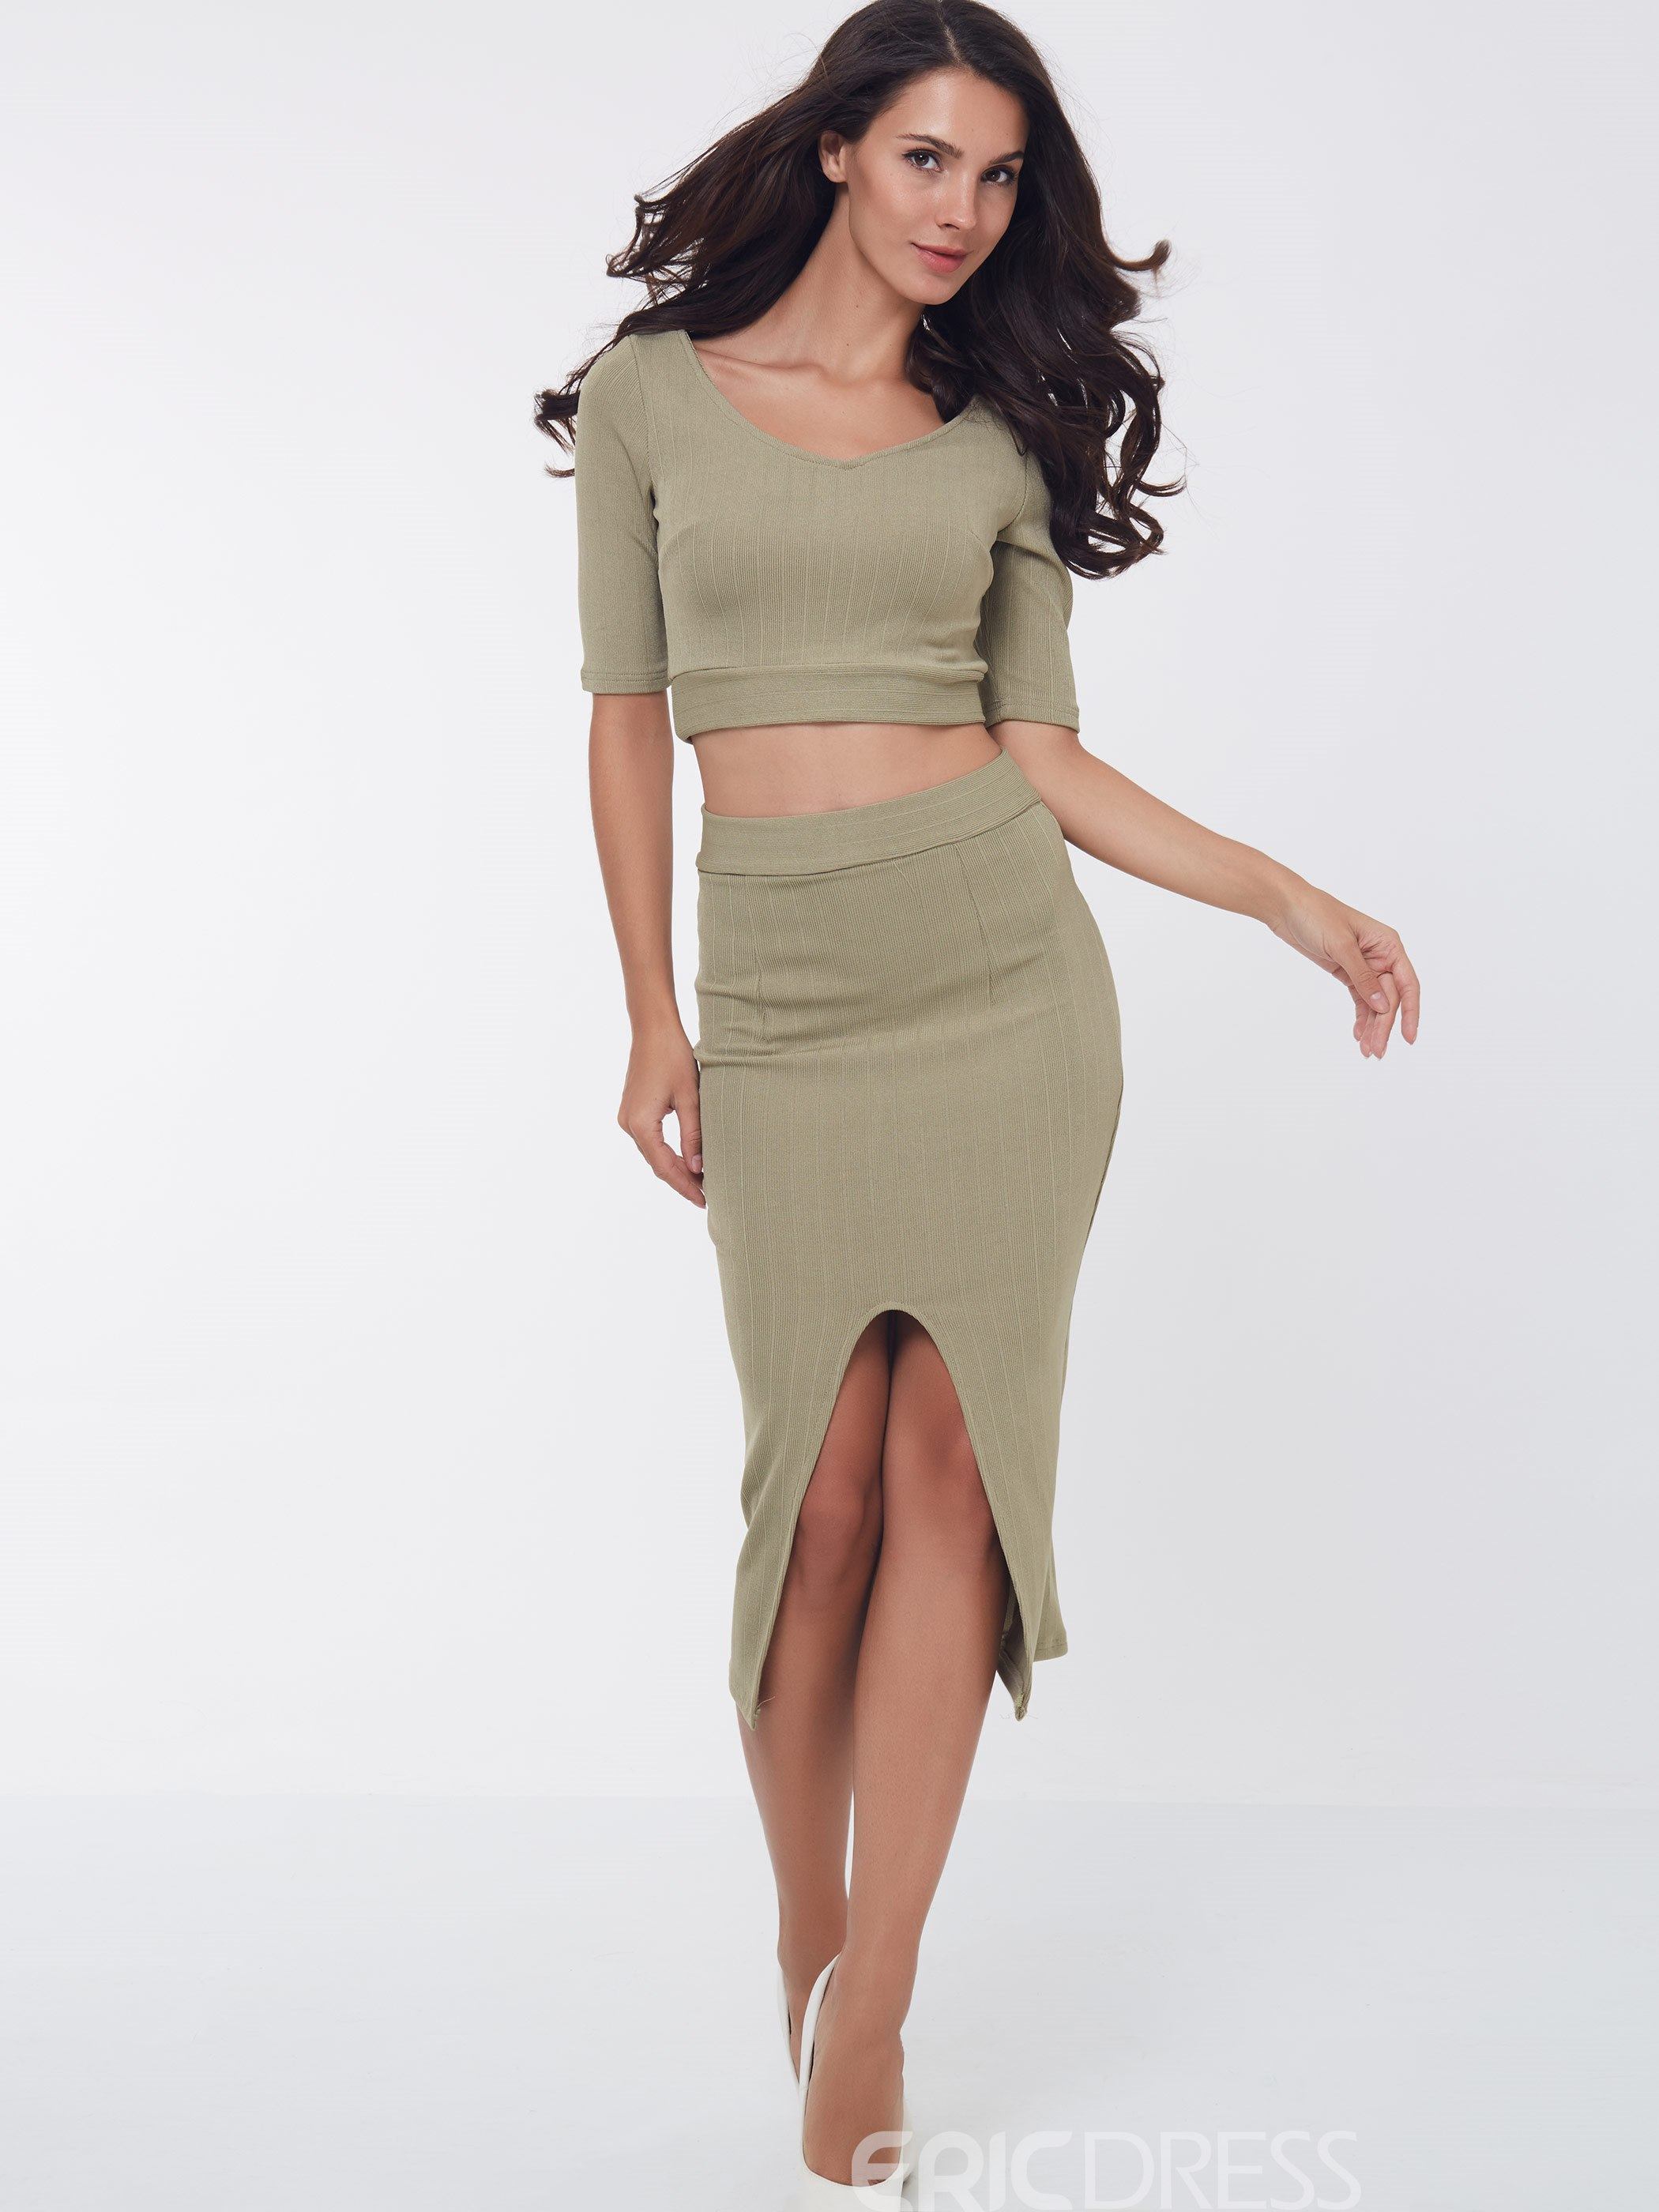 Ericdress Fashion Solid Color Two-Piece Suit Ericdress